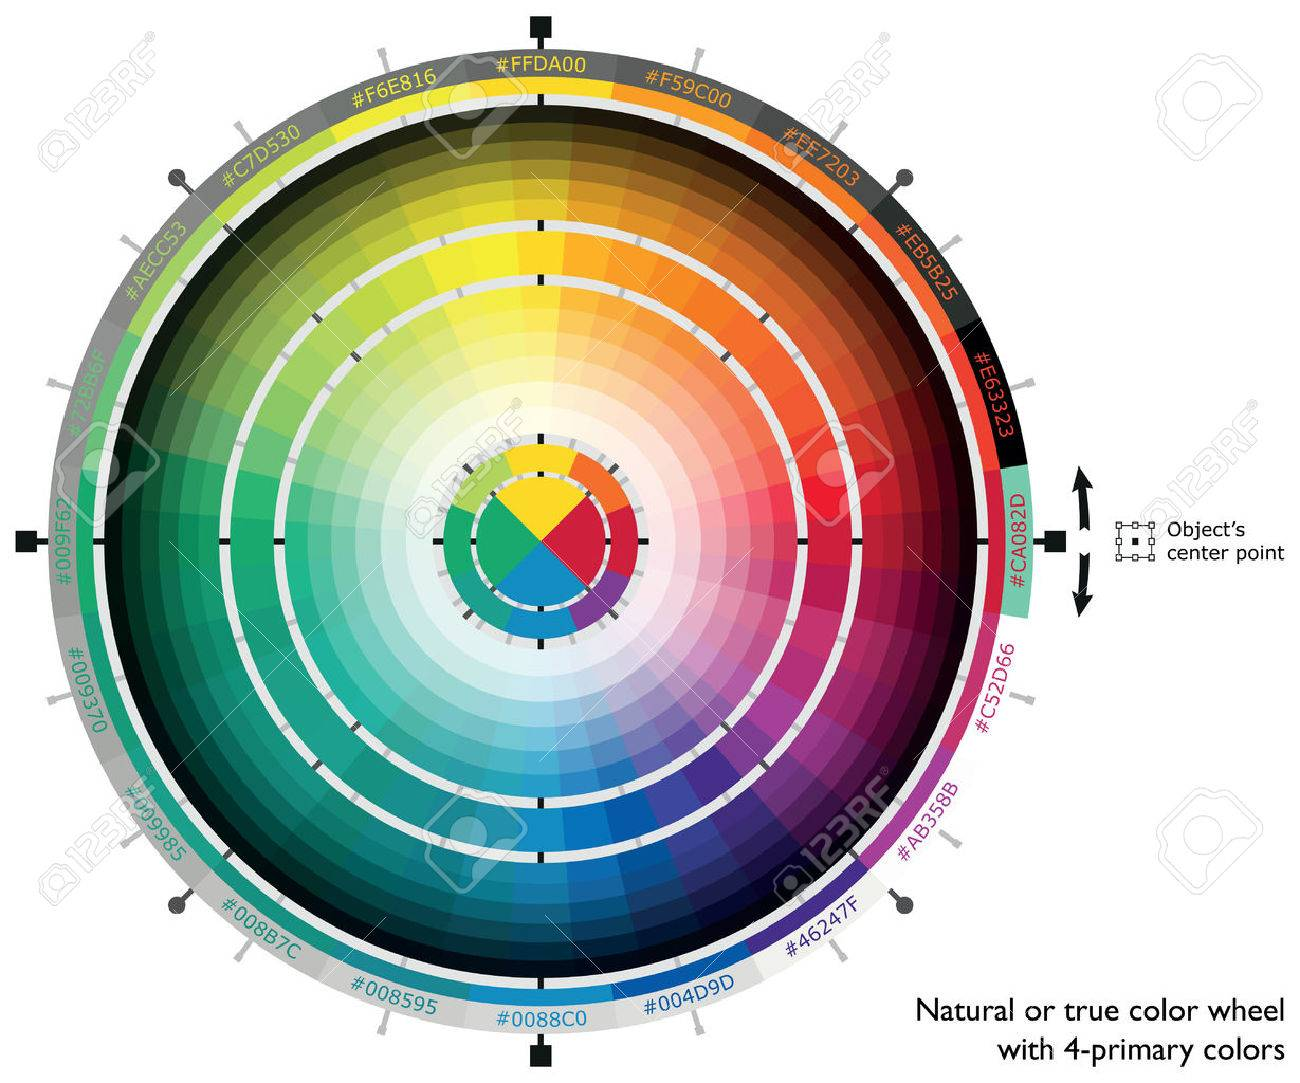 Natural or true color wheel with 4-primary colors for web artists and computer designers - 39142546